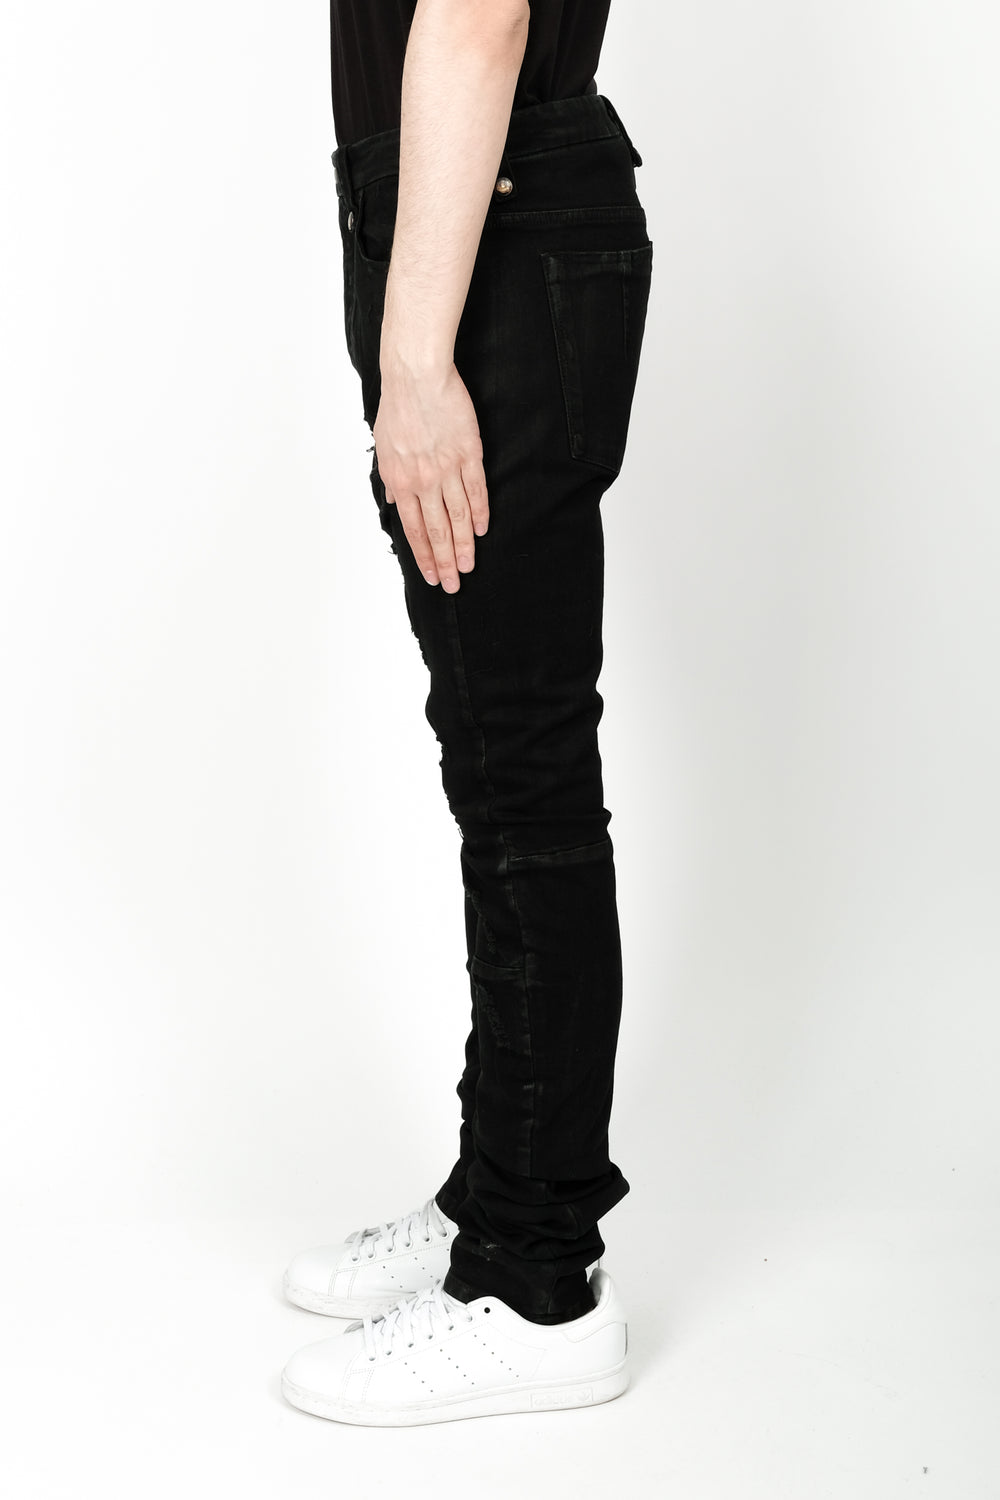 UNRAVEL Stretch Distprted 5 Pocket Denim In Black